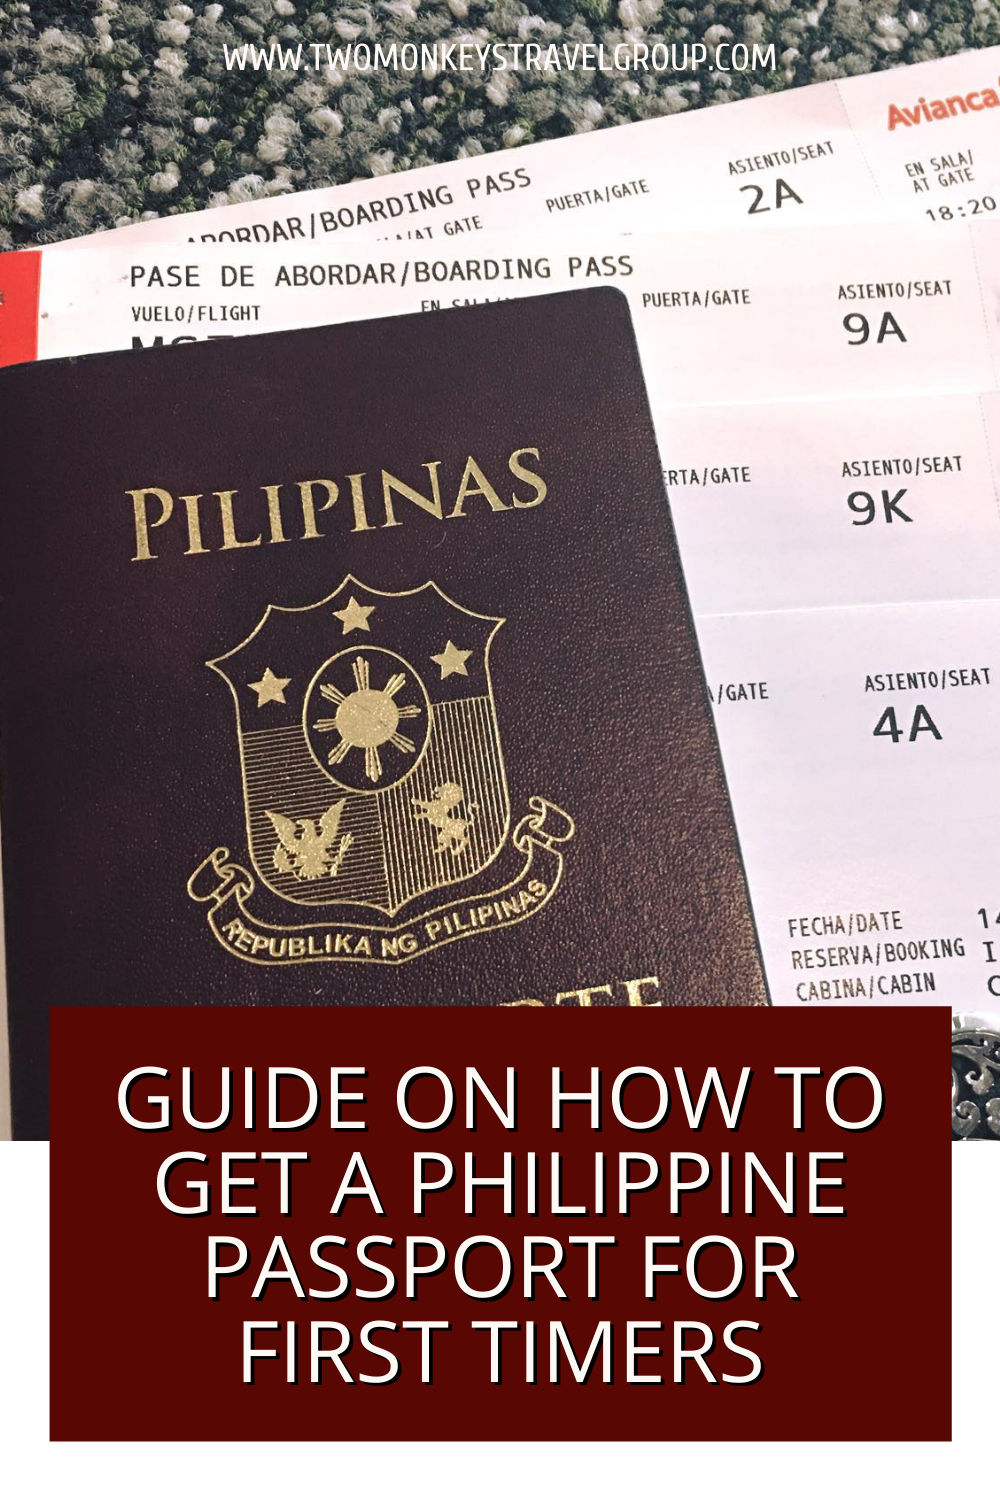 Guide On How To Get A Philippine Passport for First Timers